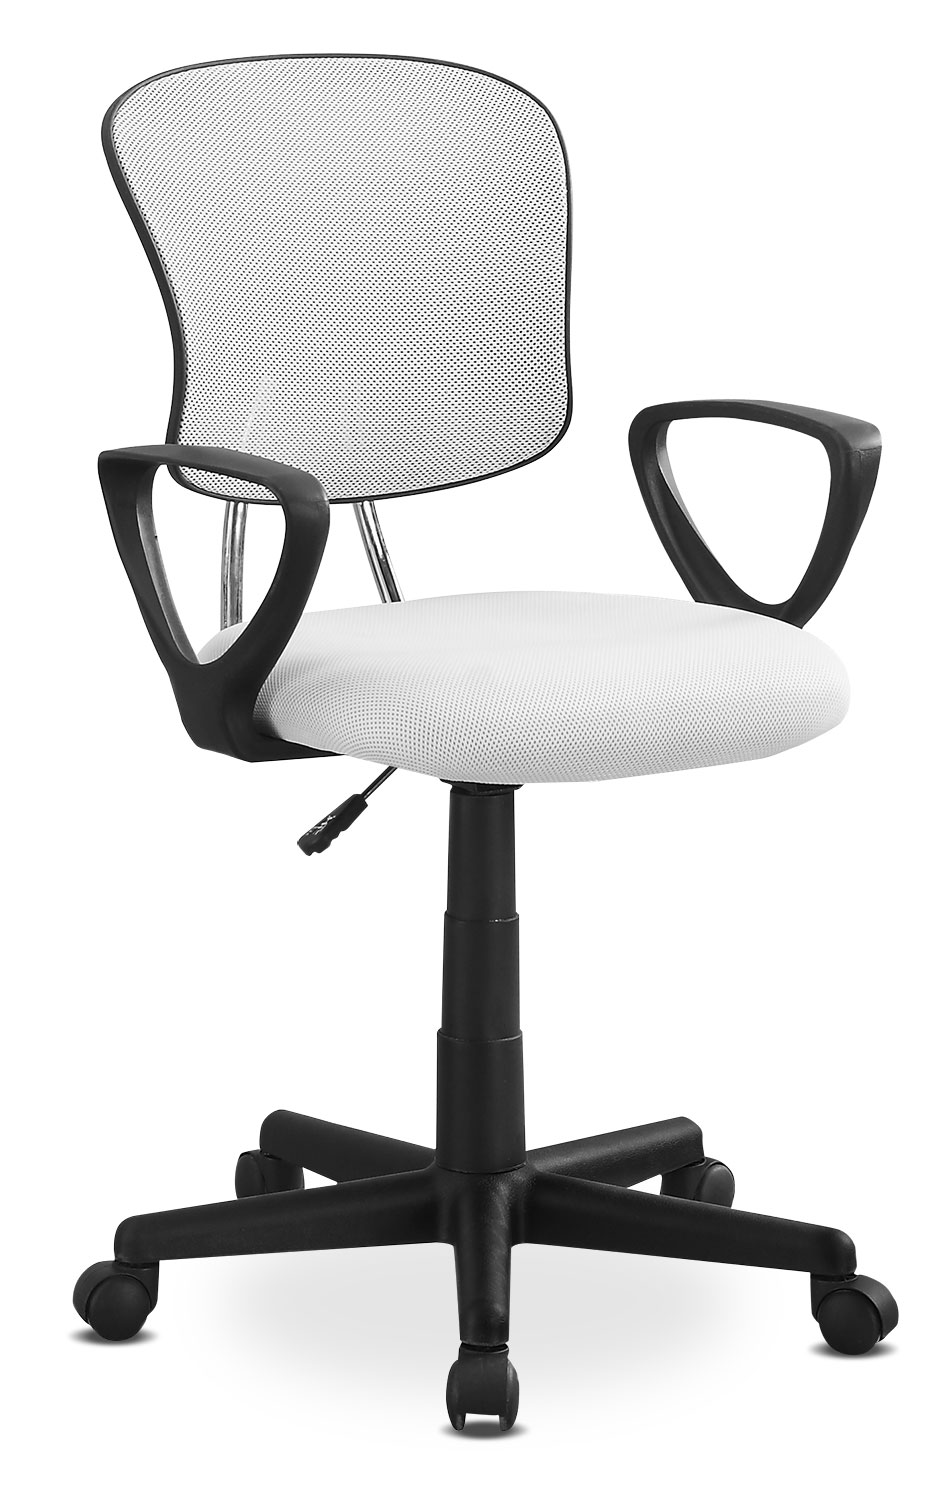 Home Office Furniture - Online Only - Polito Office Chair - White